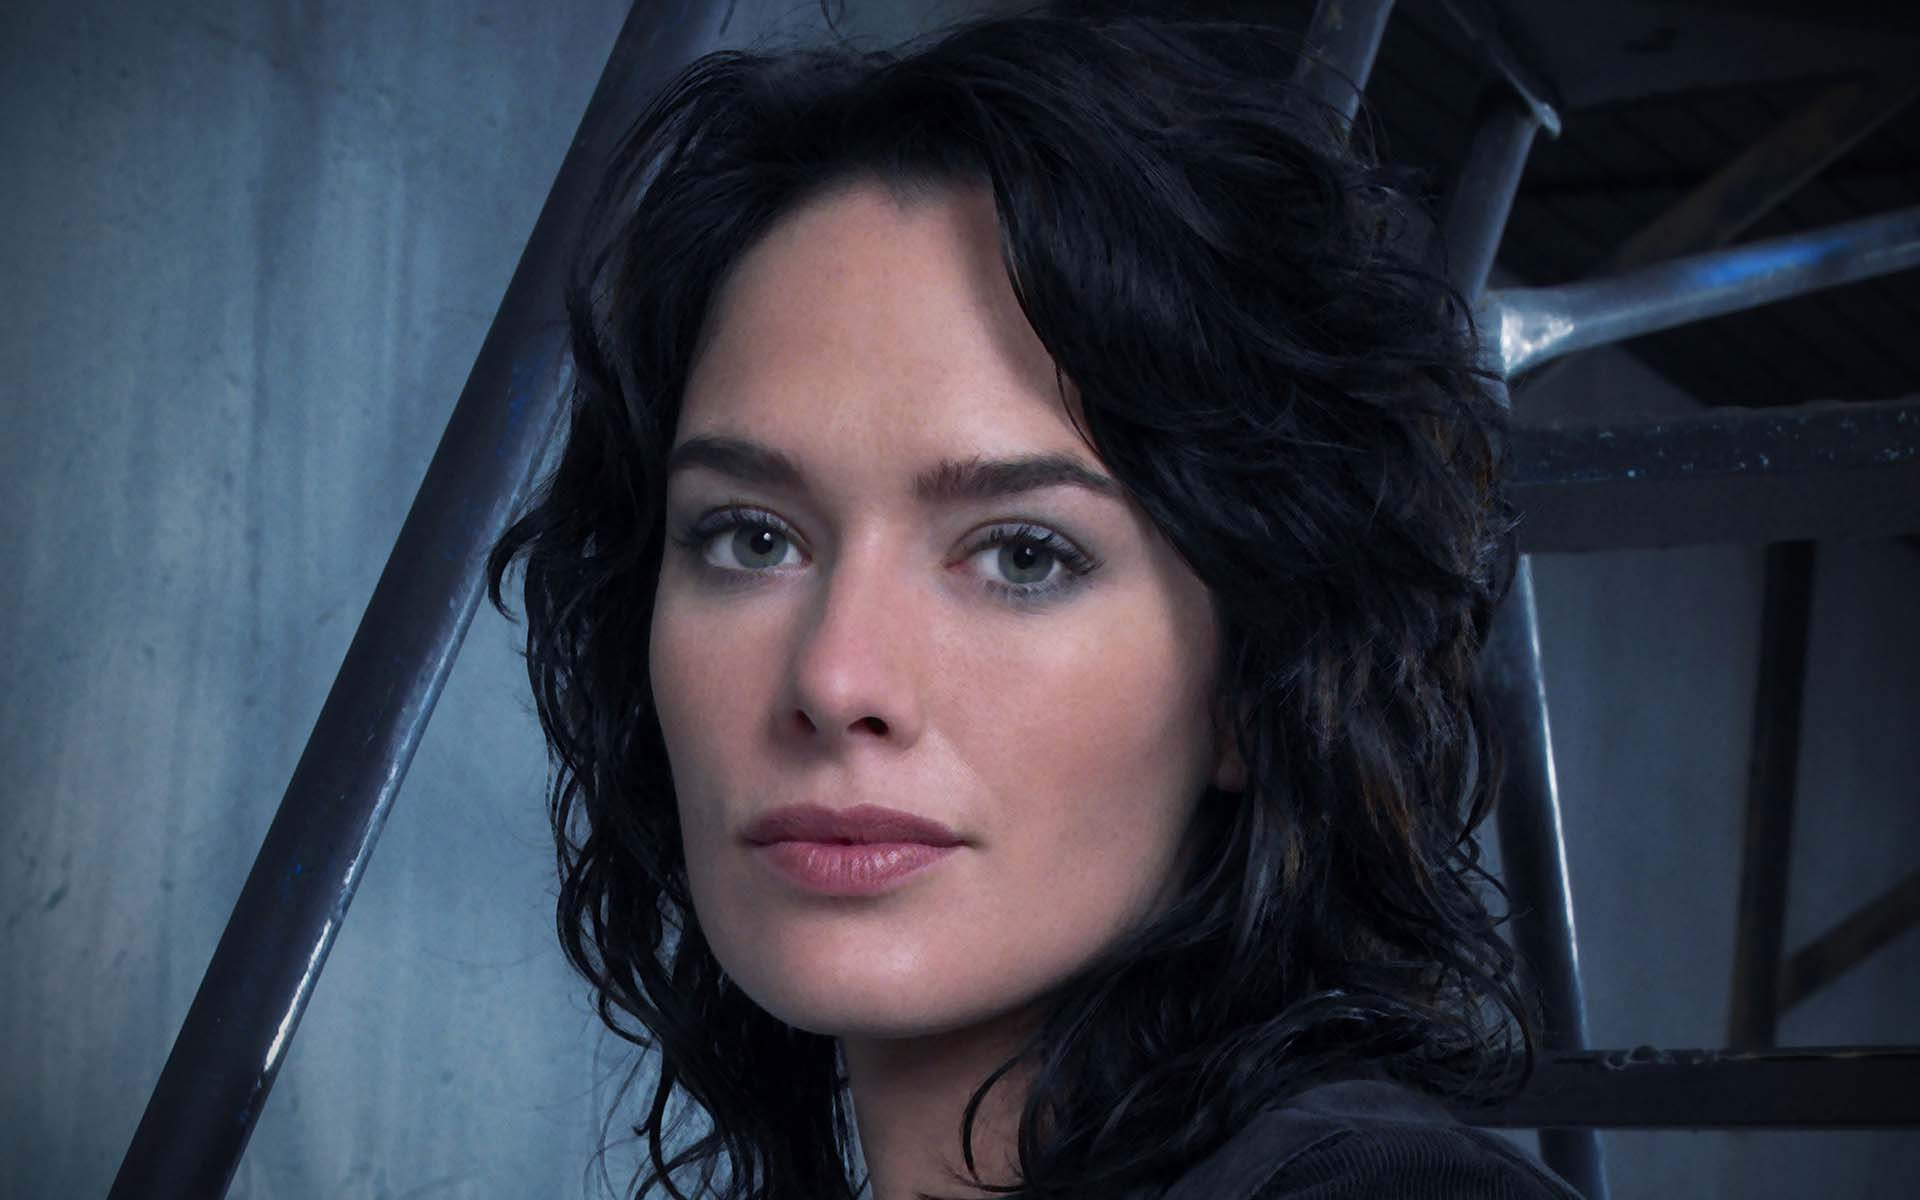 lena headey full hd pics images wallpaper download photos